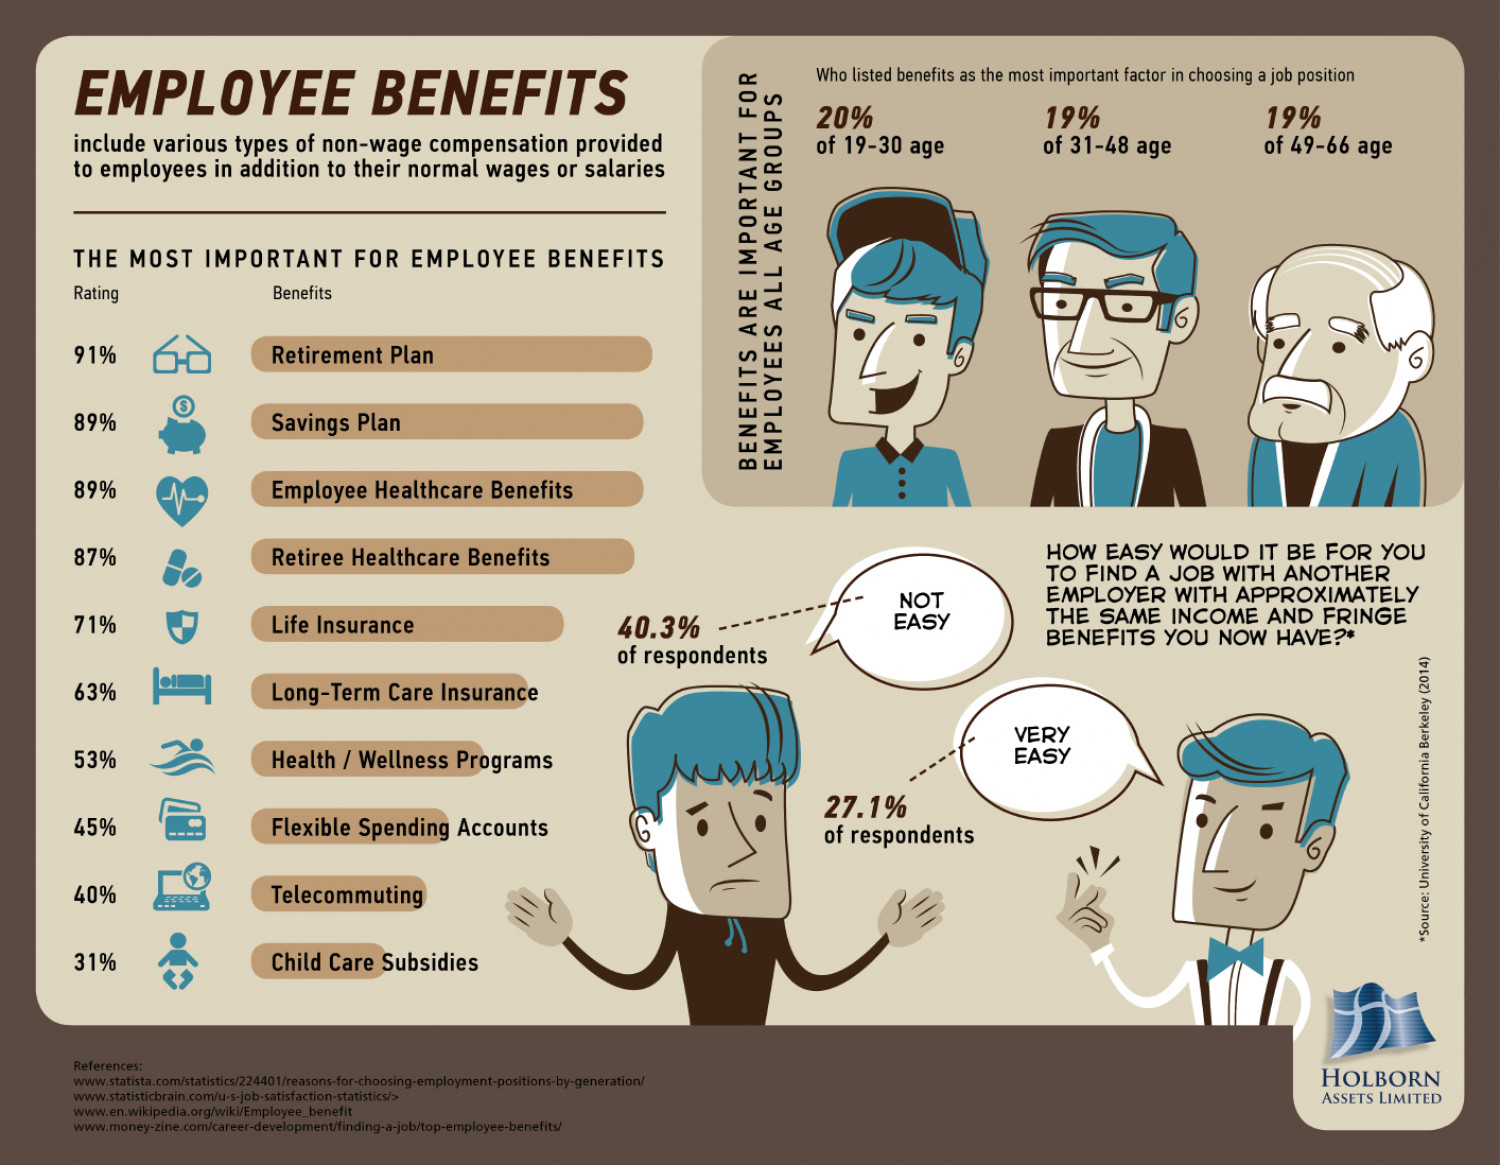 benefits that are important to employees